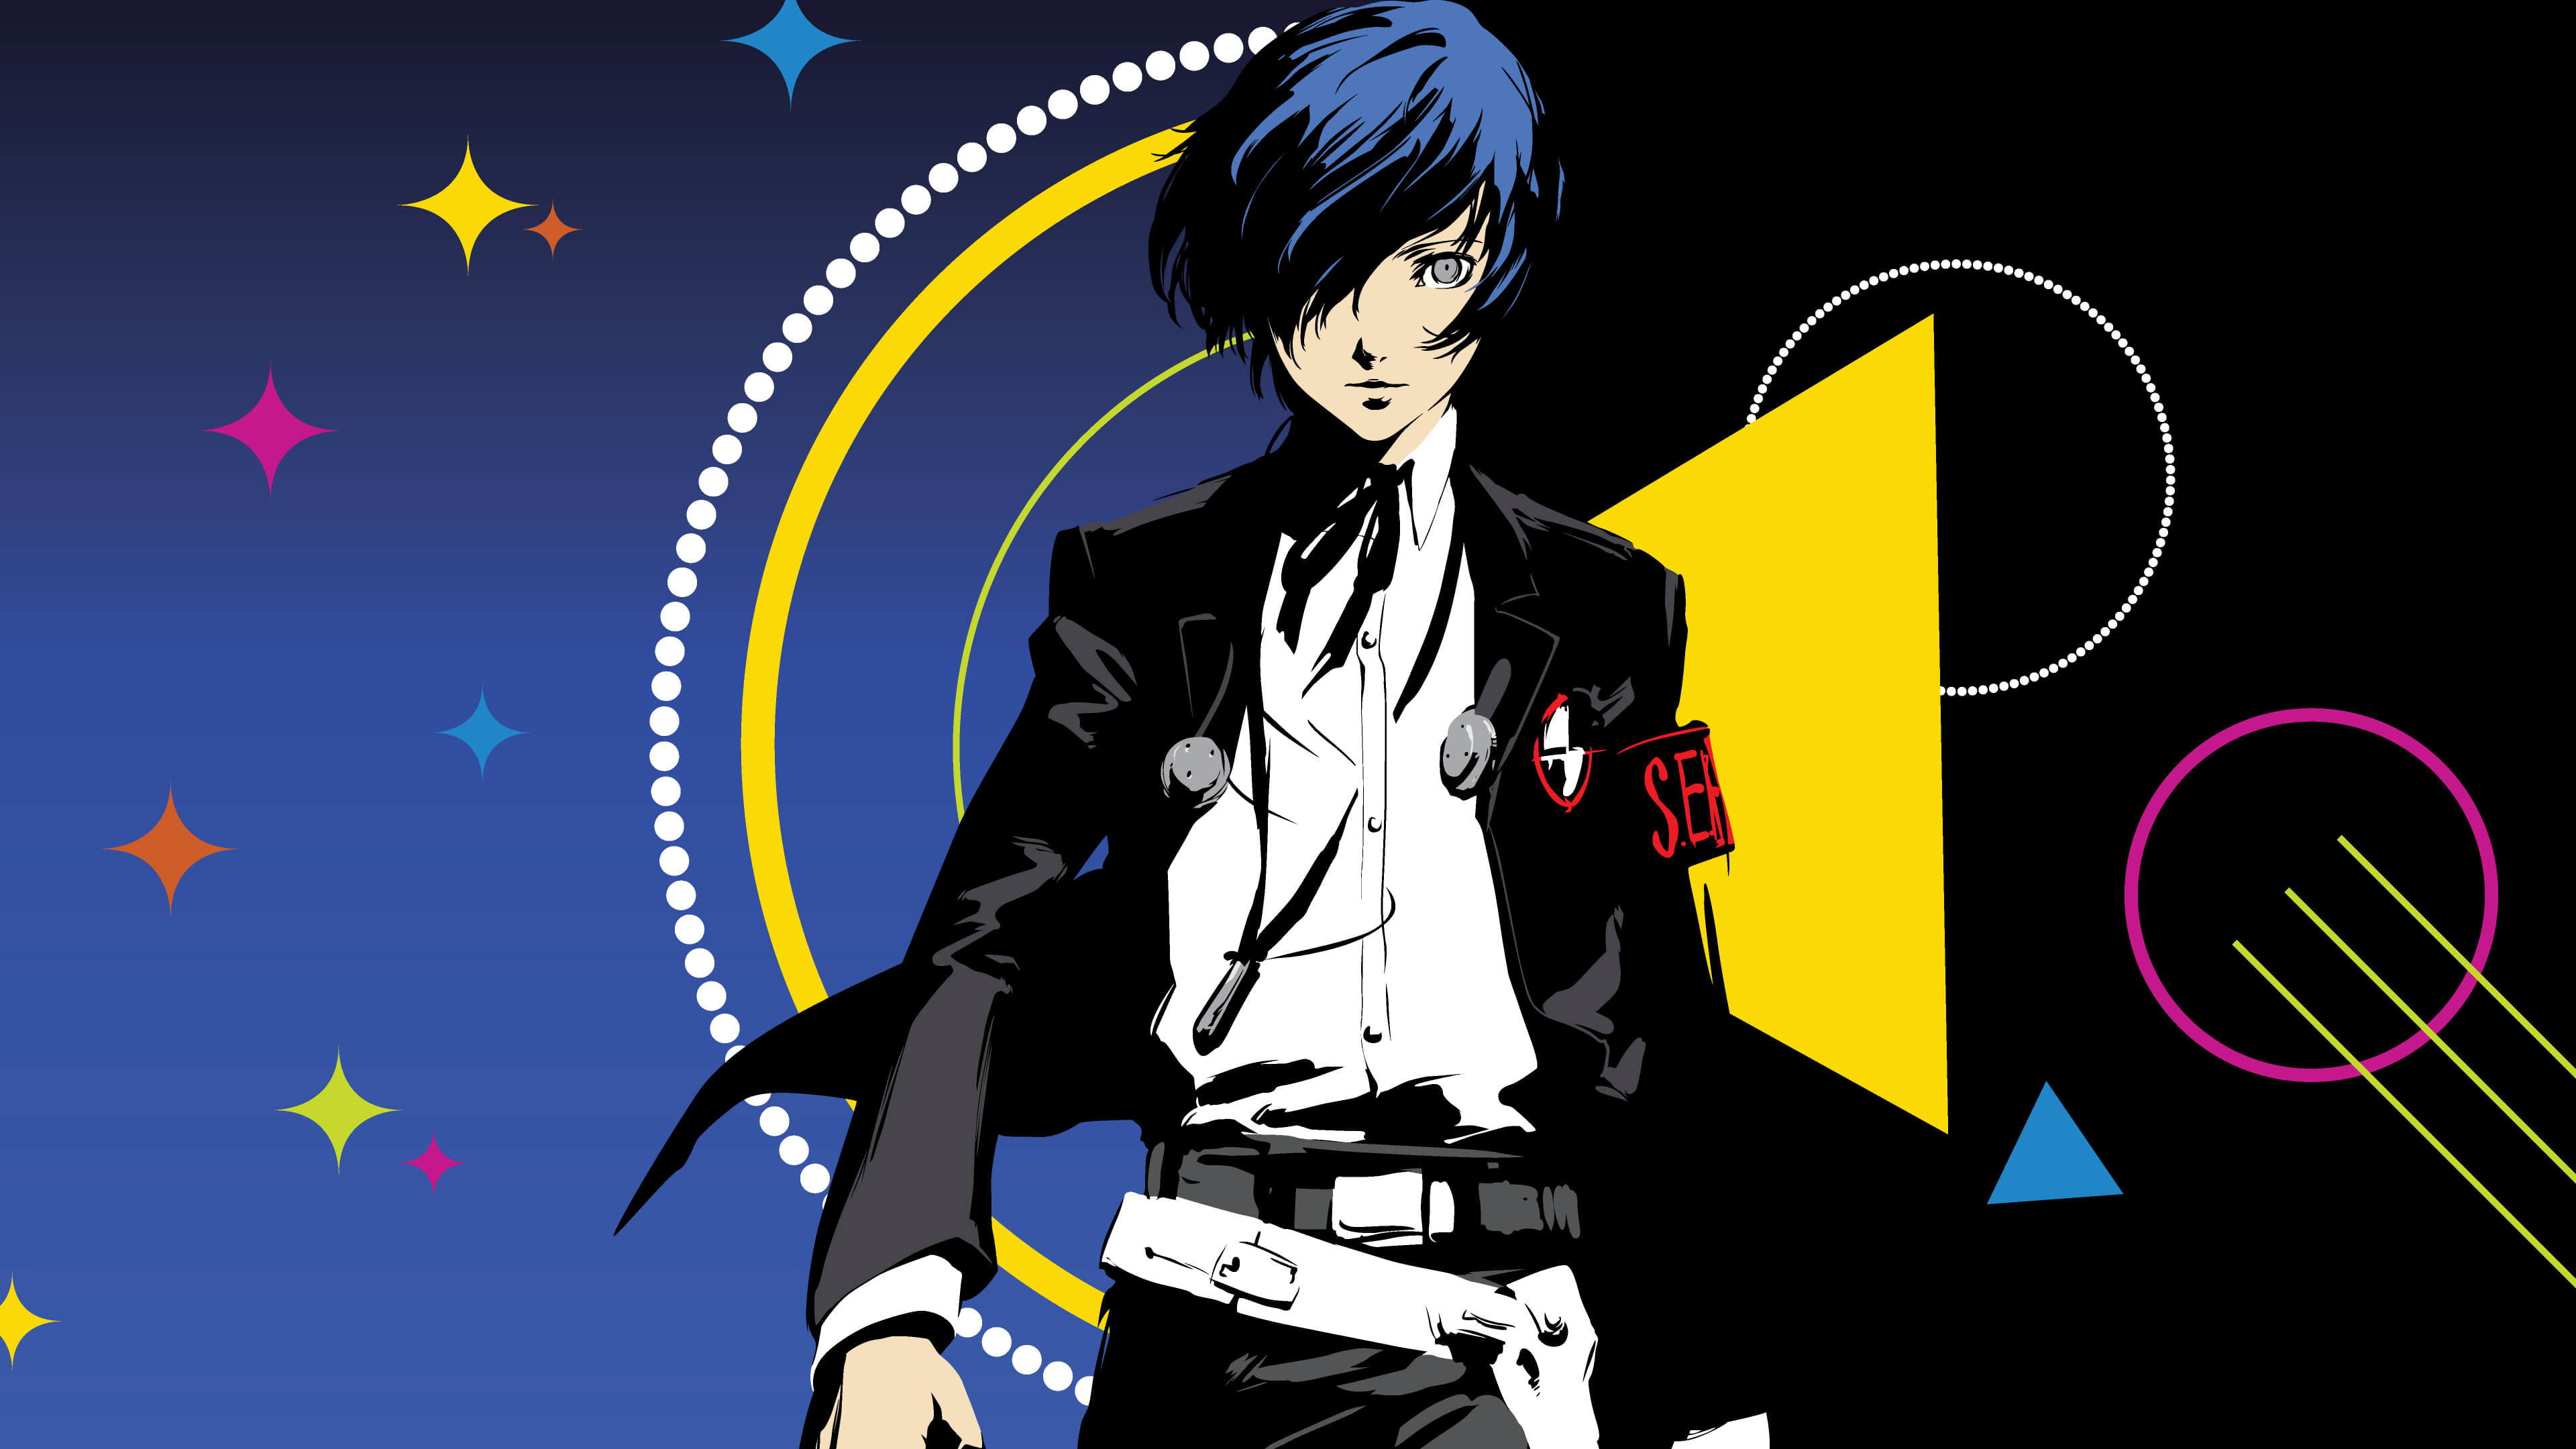 persona 3 potagonist uhd 4k wallpaper